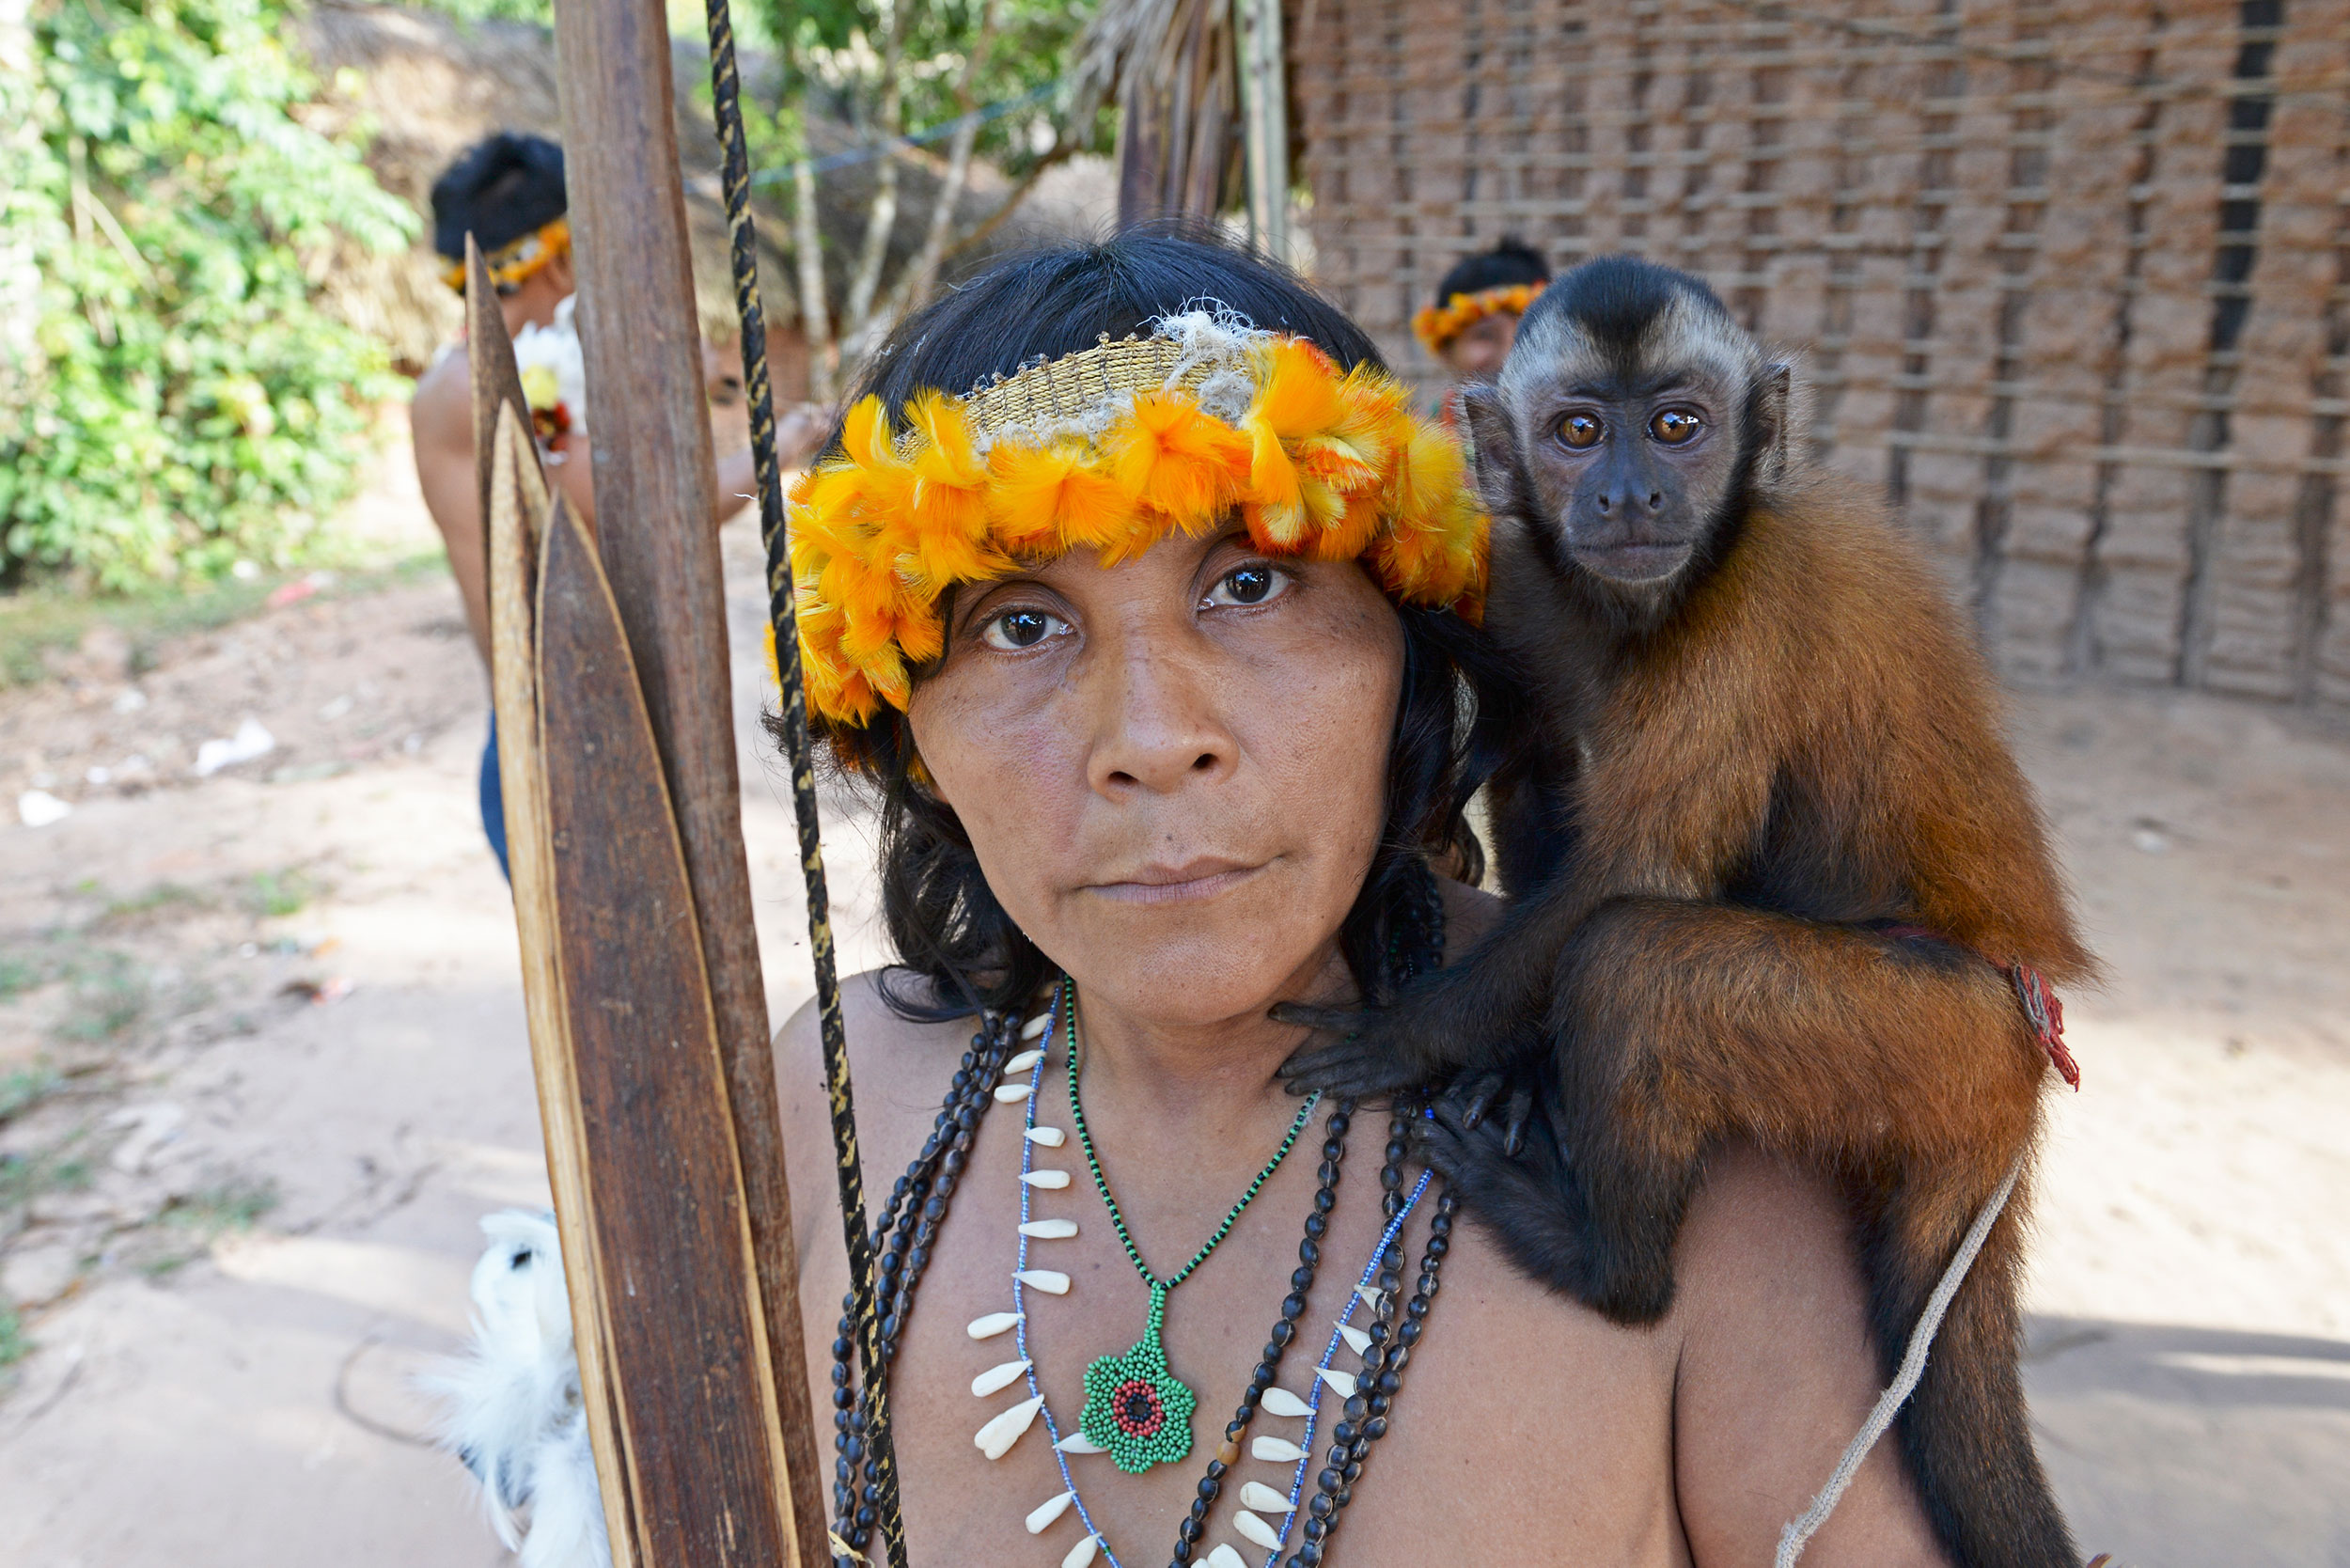 Awá woman, in a toucan feather headdress, holds a hunting bow and arrows while a pet monkey sits on her opposite shoulder in Carú Indigenous Territory, Brazil, 2017.